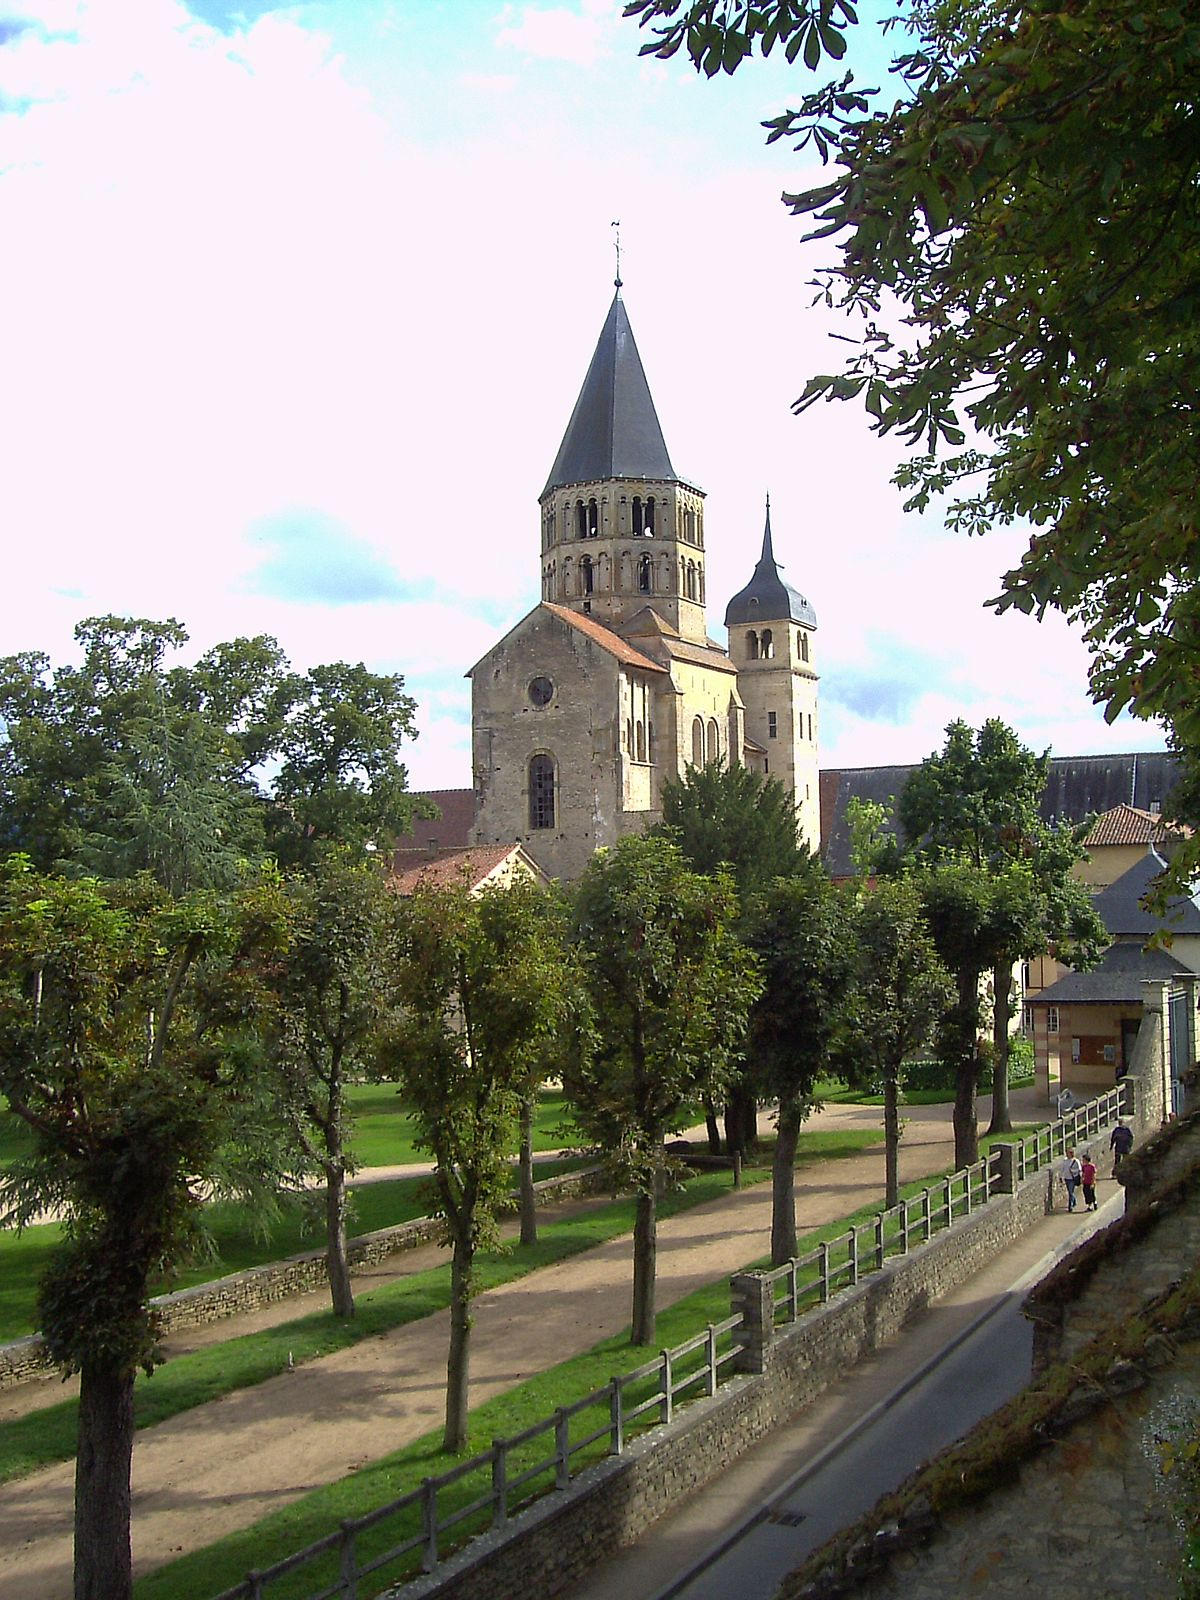 Clocher de cluny.jpg